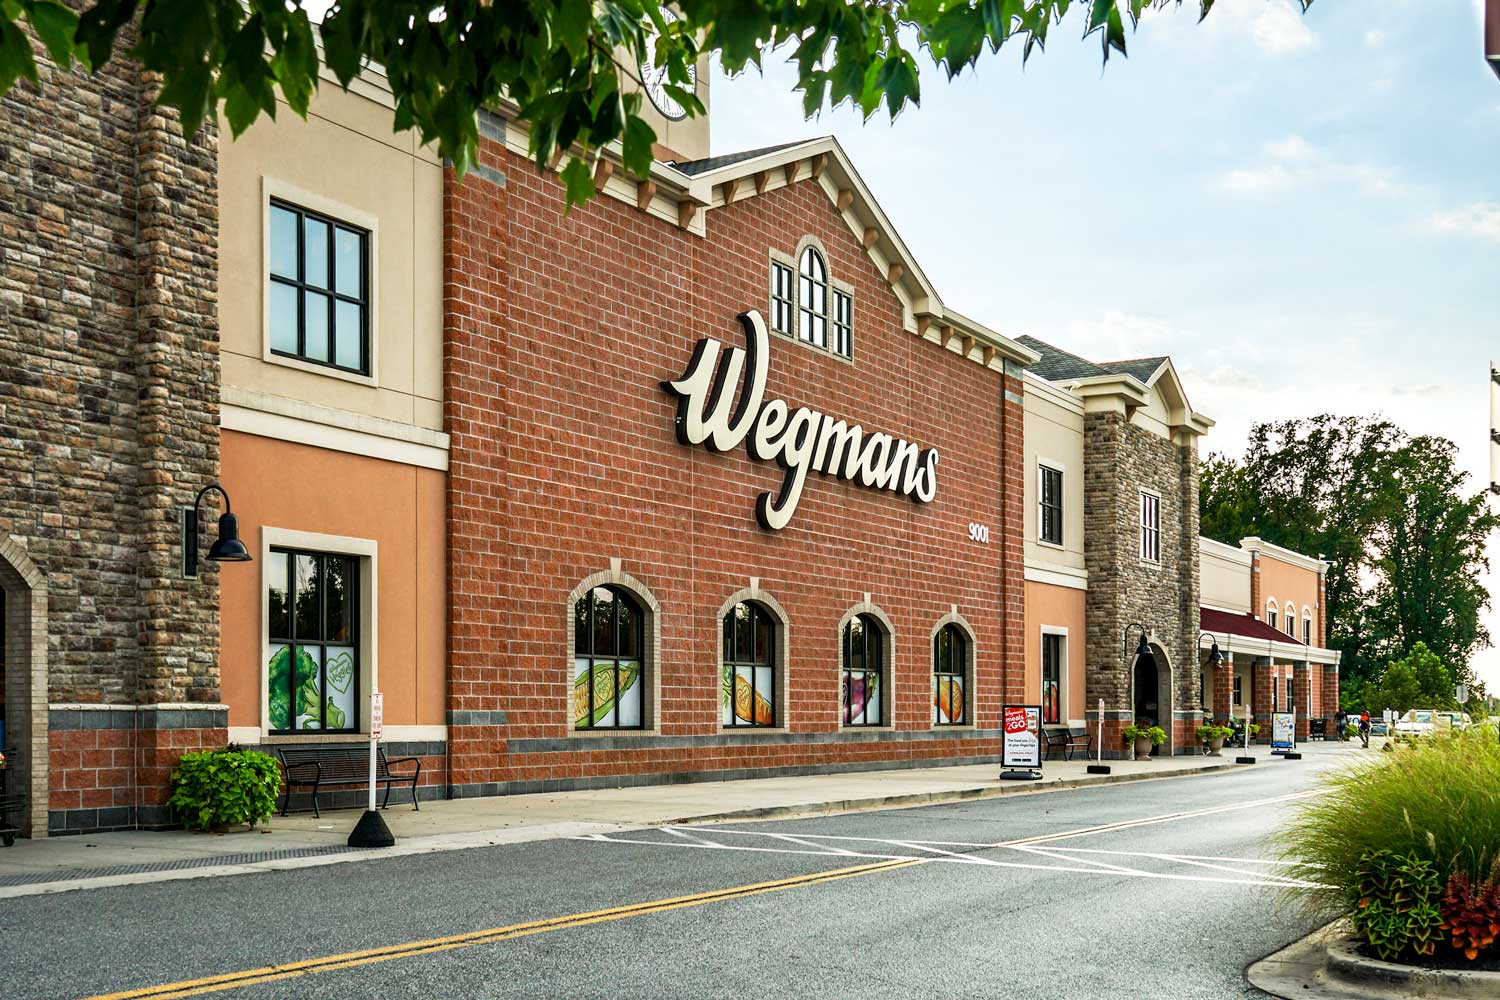 Wegmans is 10 minutes from Columbia Park Apartments in Landover, MD